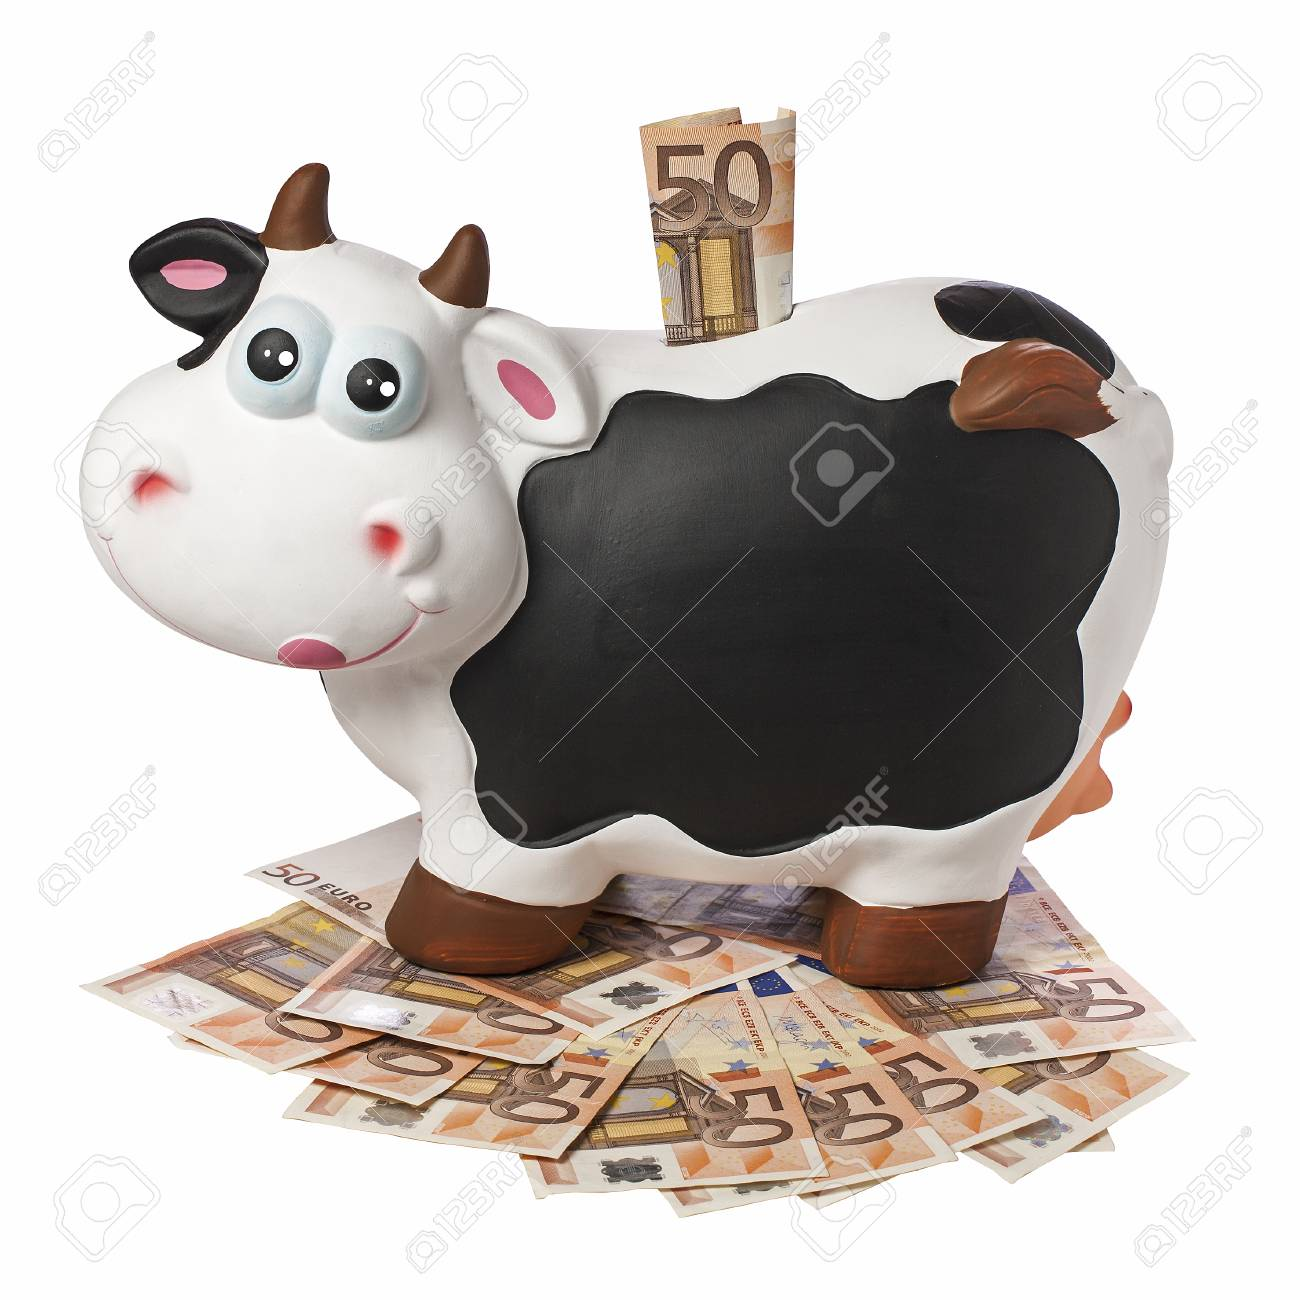 Porcelain Cow Piggybank With 50 Euro Inserted On 50 Euro Banknotes